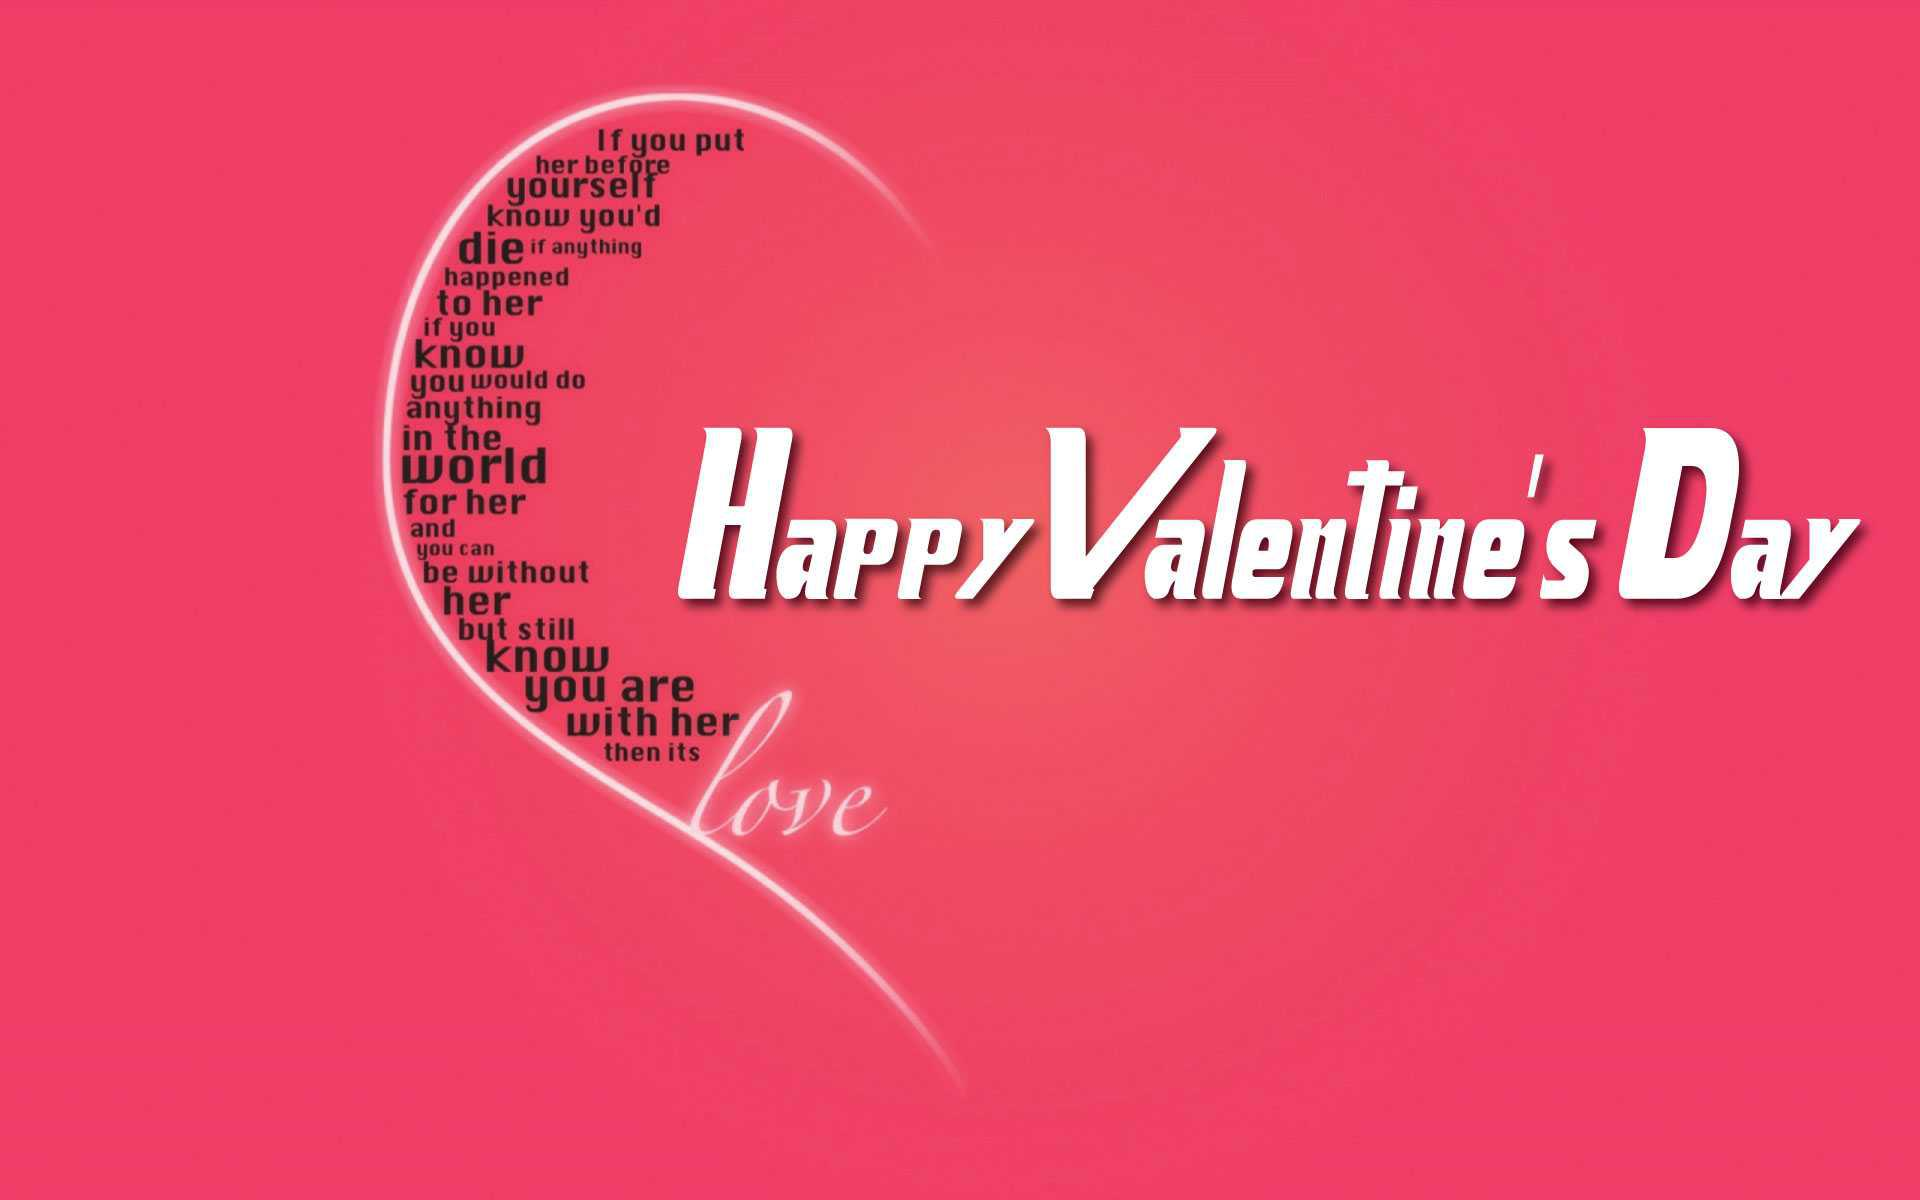 Happy Valentine's Day 2020 Bangla SMS, Image, Ideas for Friends